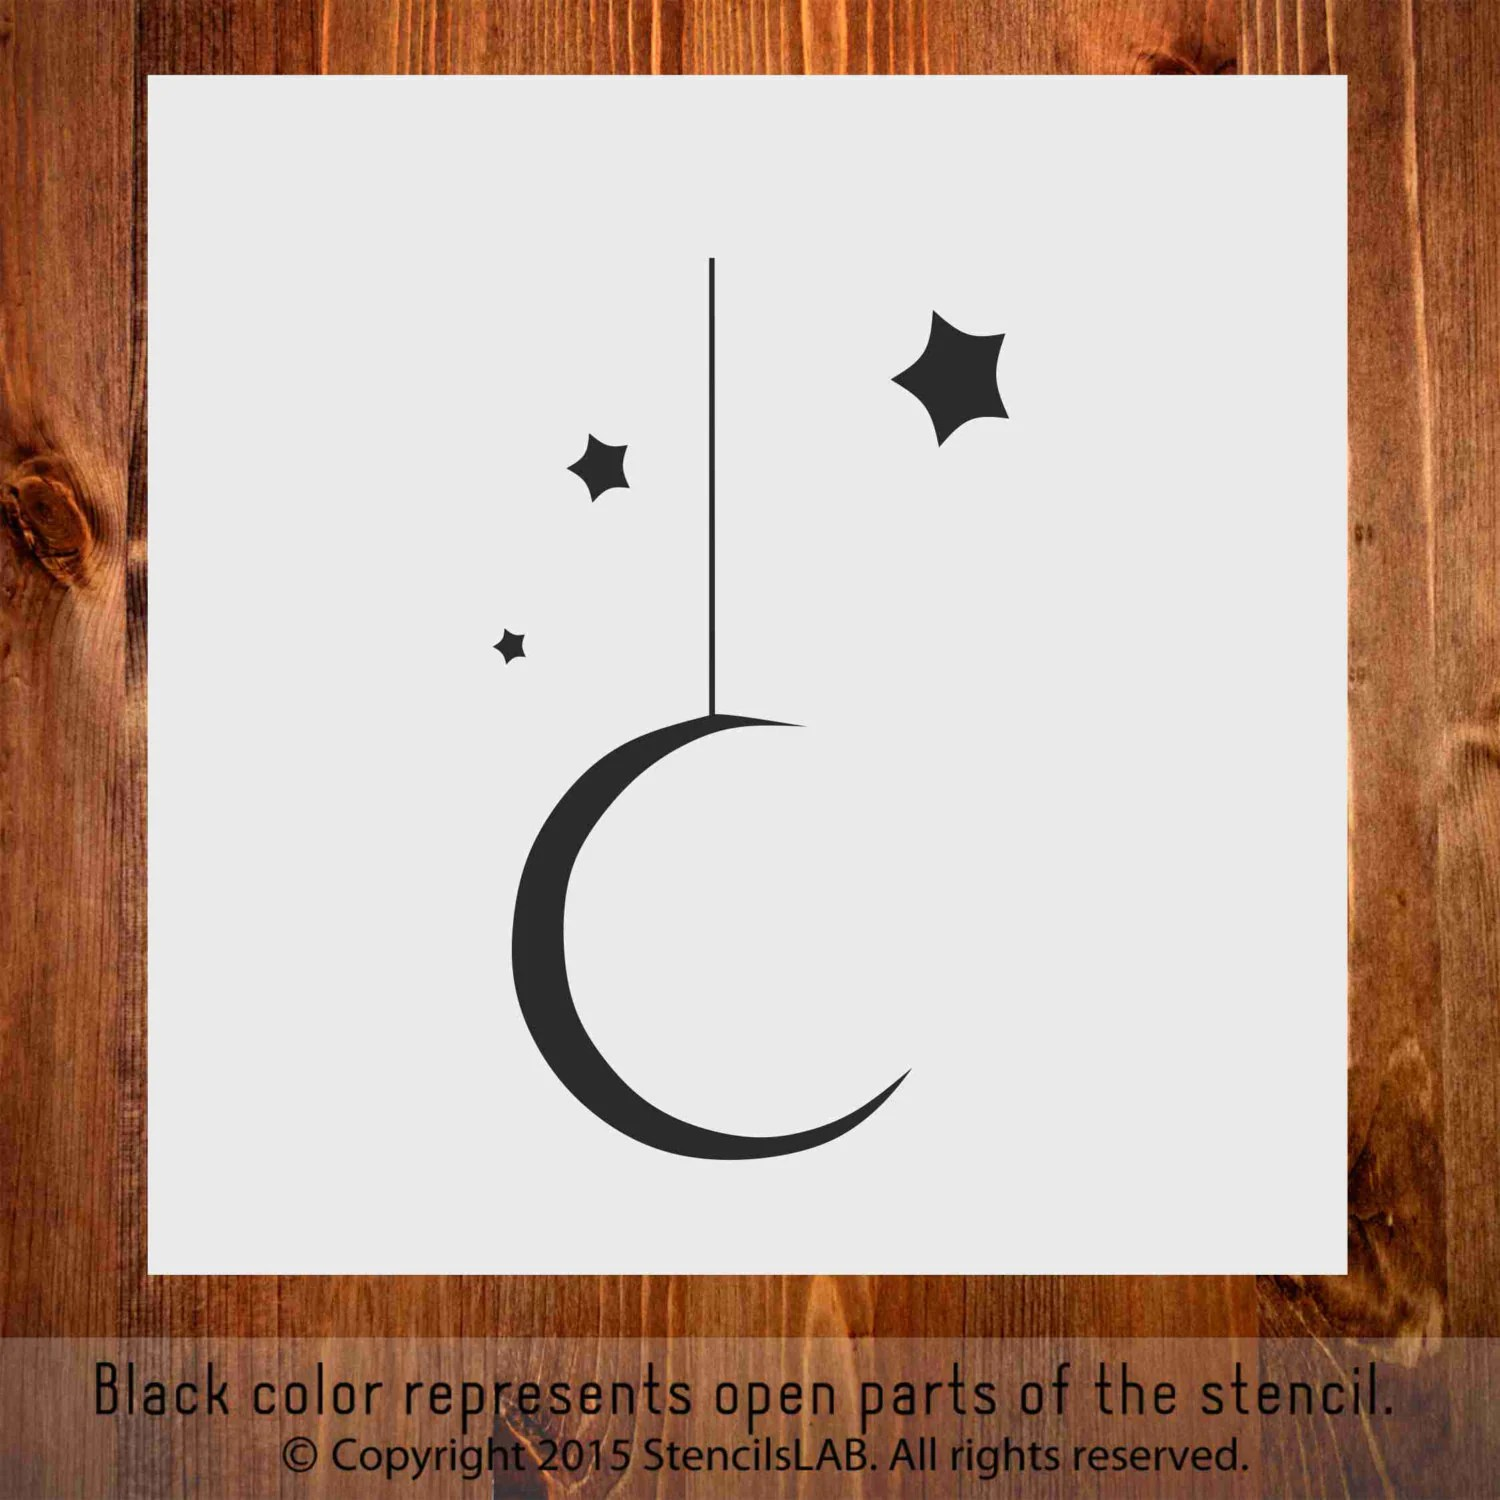 Moon And Stars Small Stencil For Diy Projects 11 X